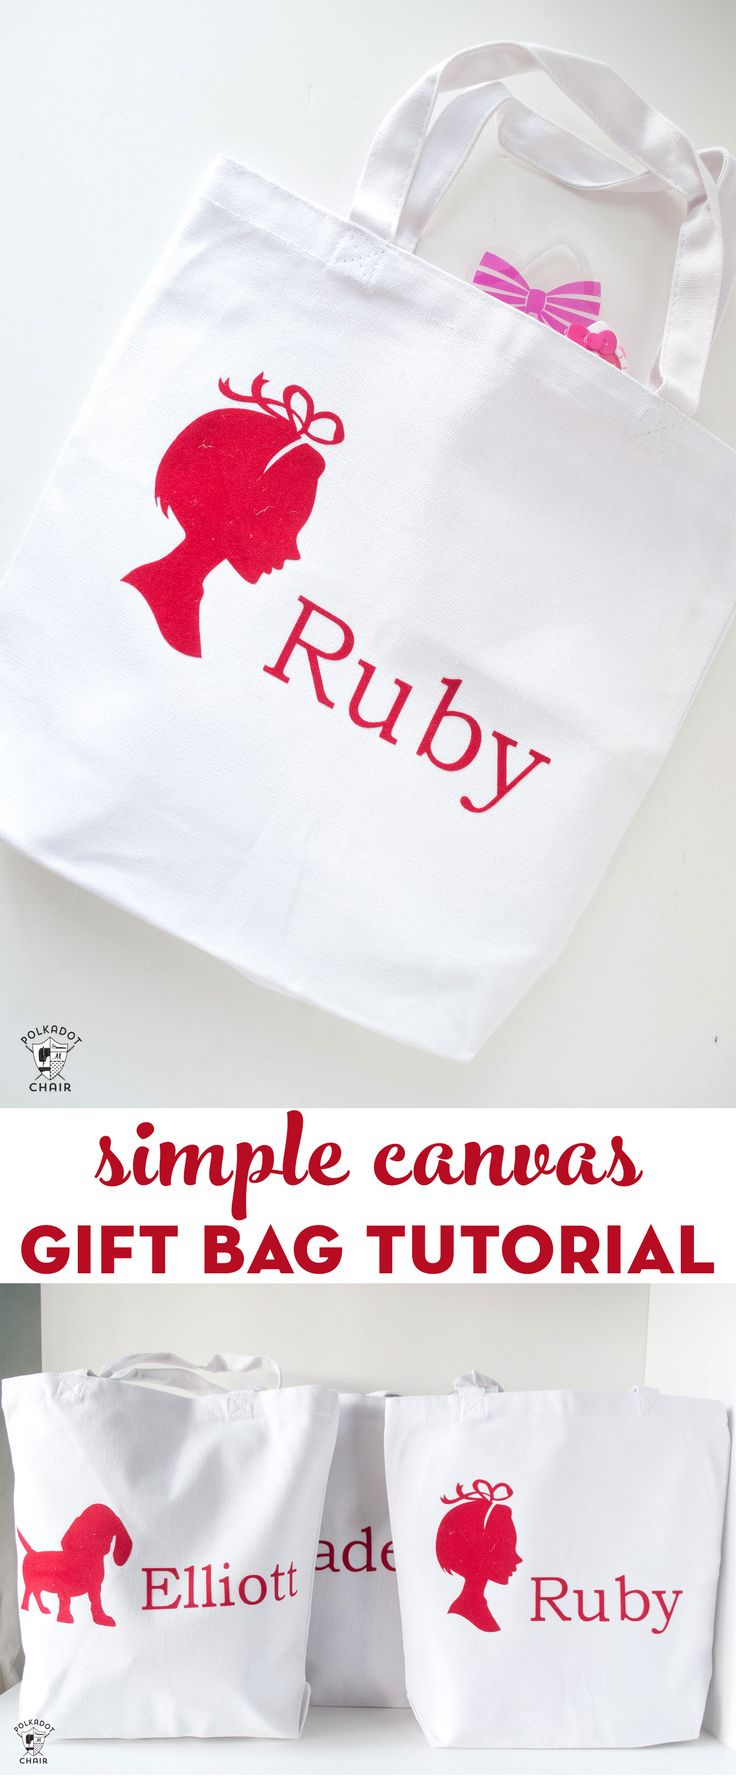 Simple Canvas Gift bag tutorial. How to make a canvas gift bag. #gifts #christma...